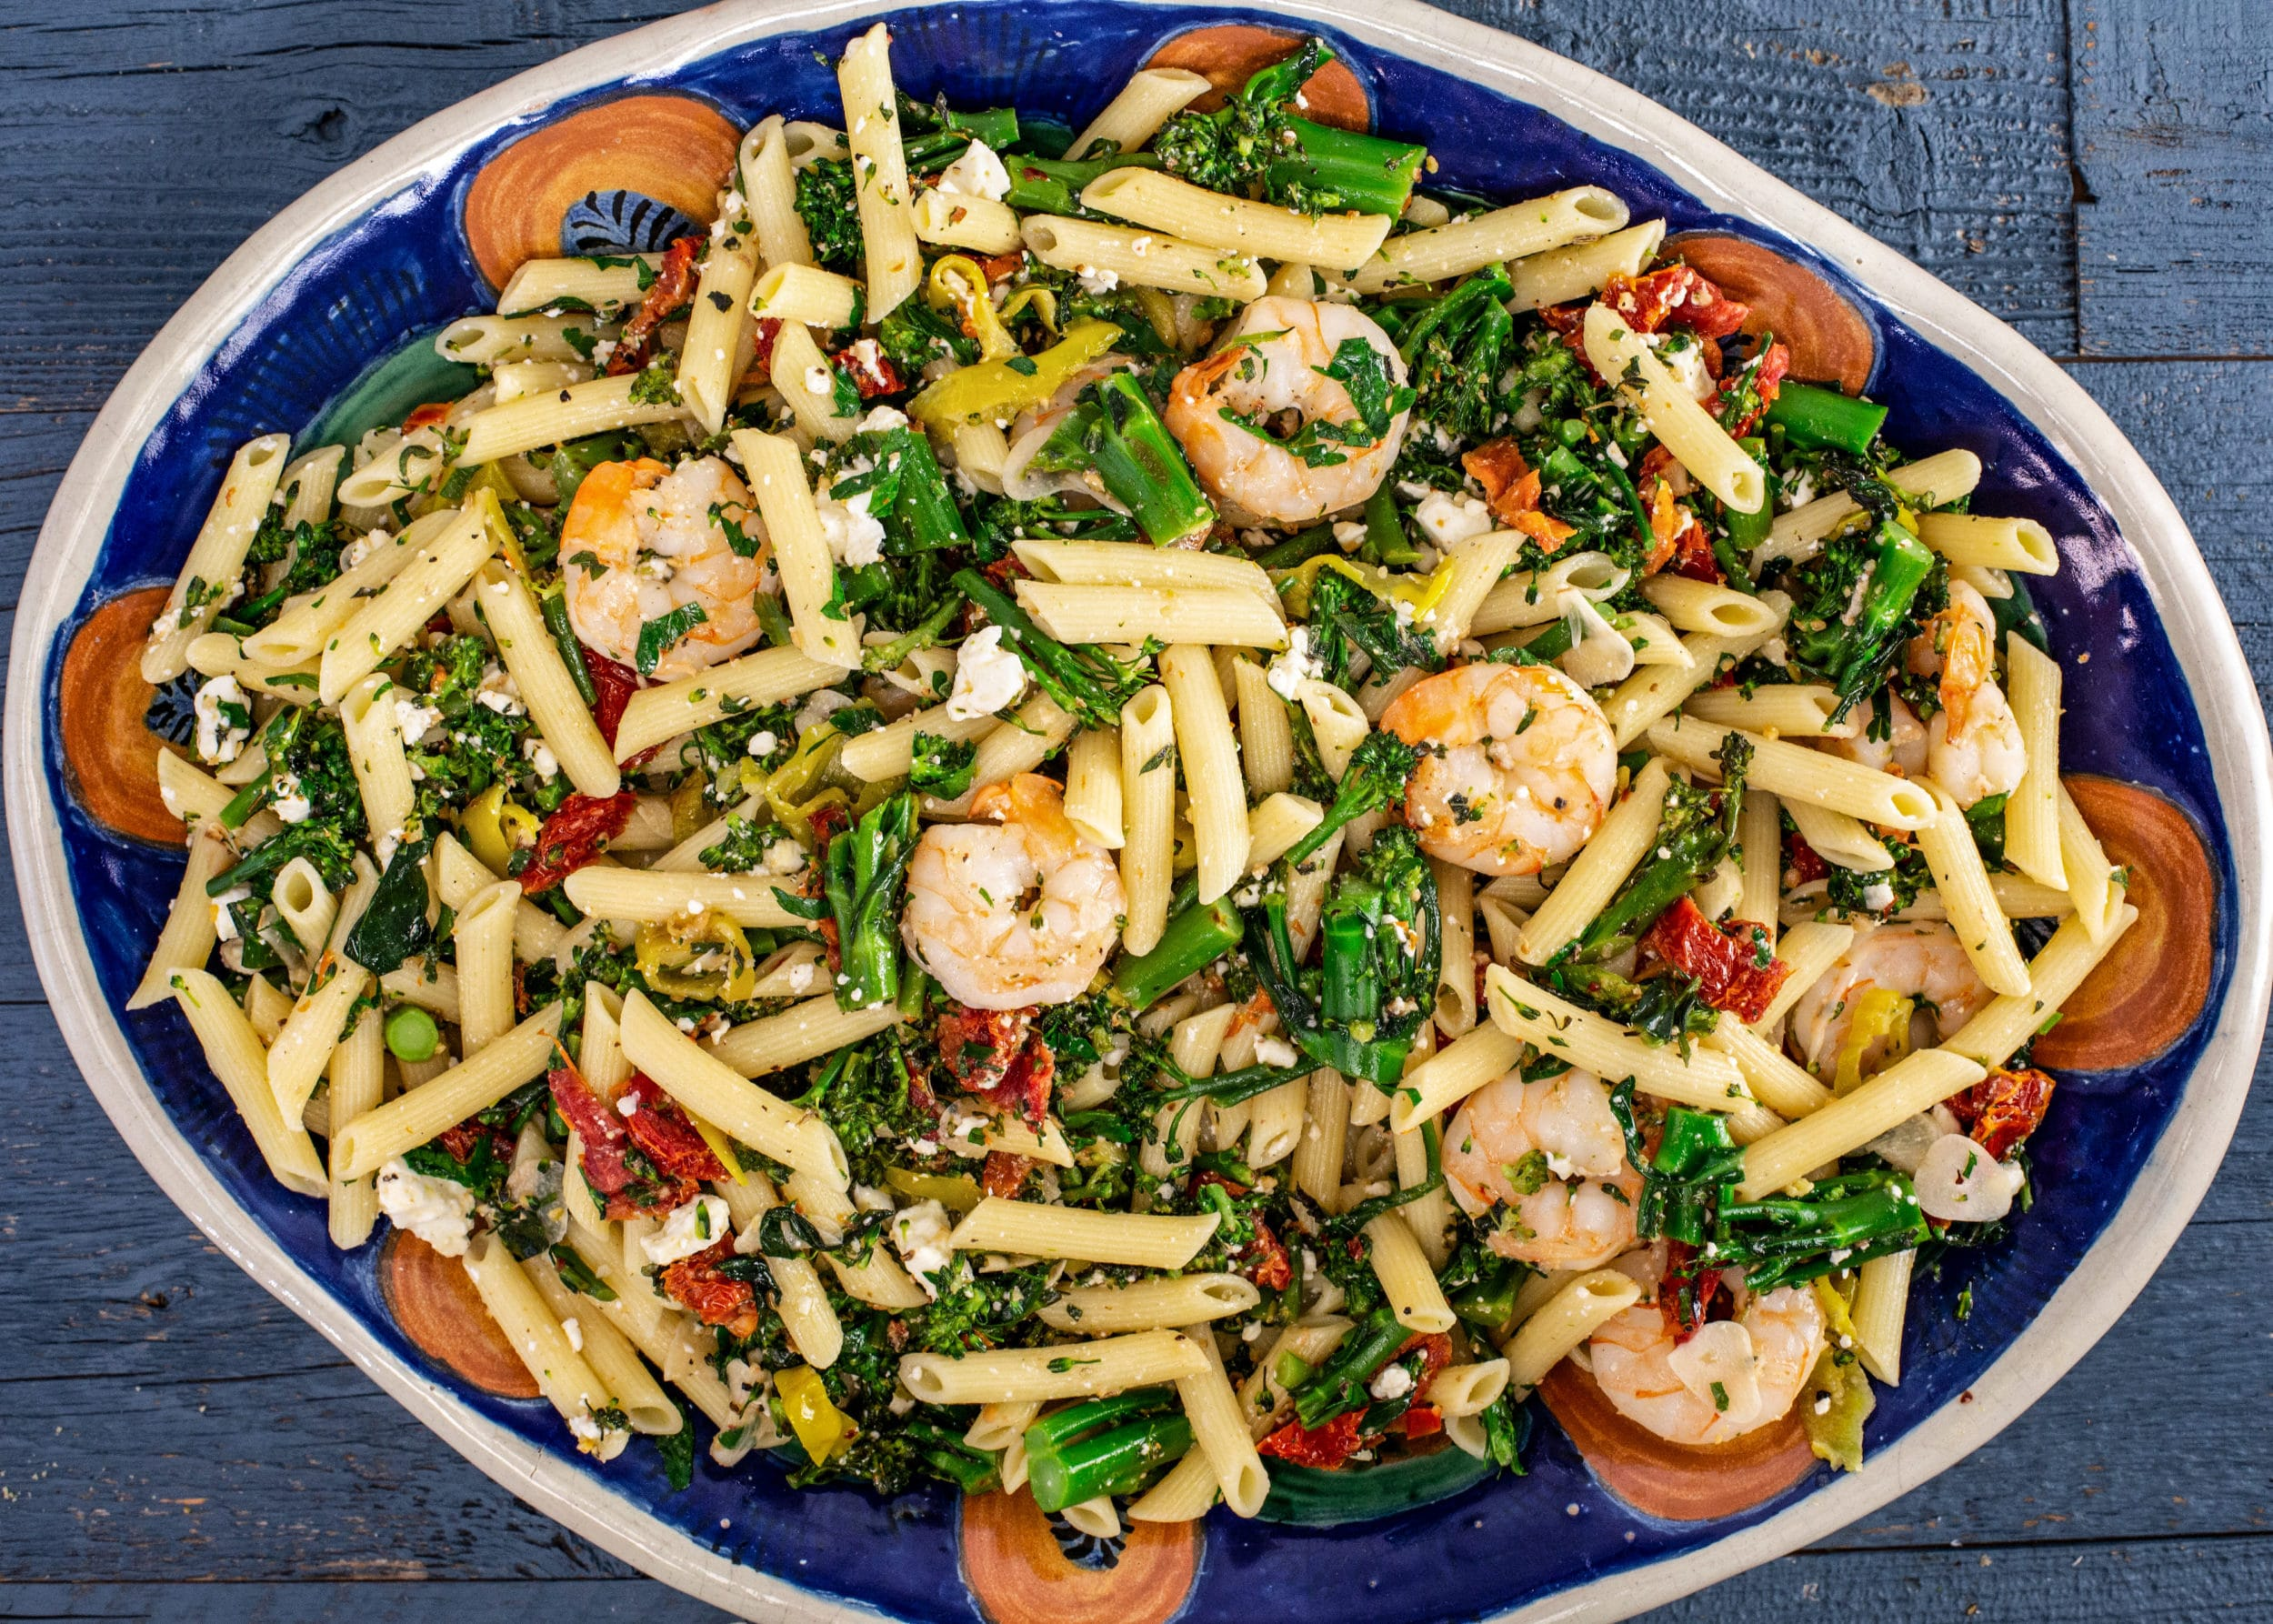 Rachael's Sundried Tomato and Broccolini Pasta with Shrimp